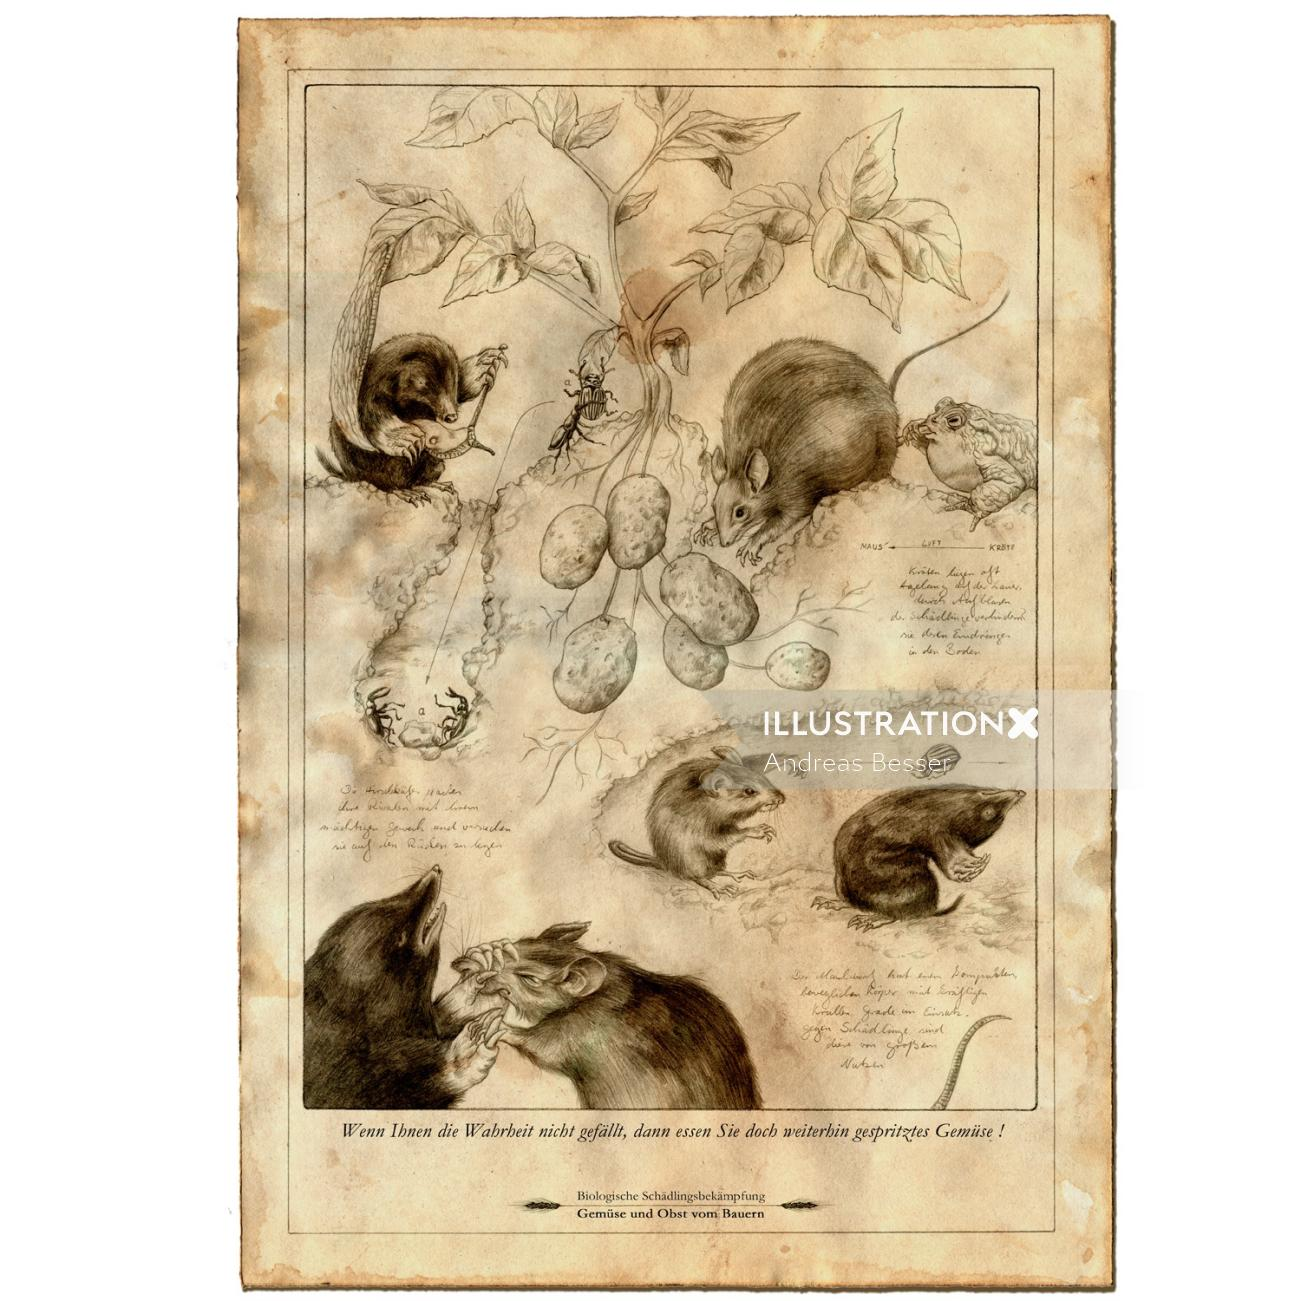 Line illustration of squirrels and mouse